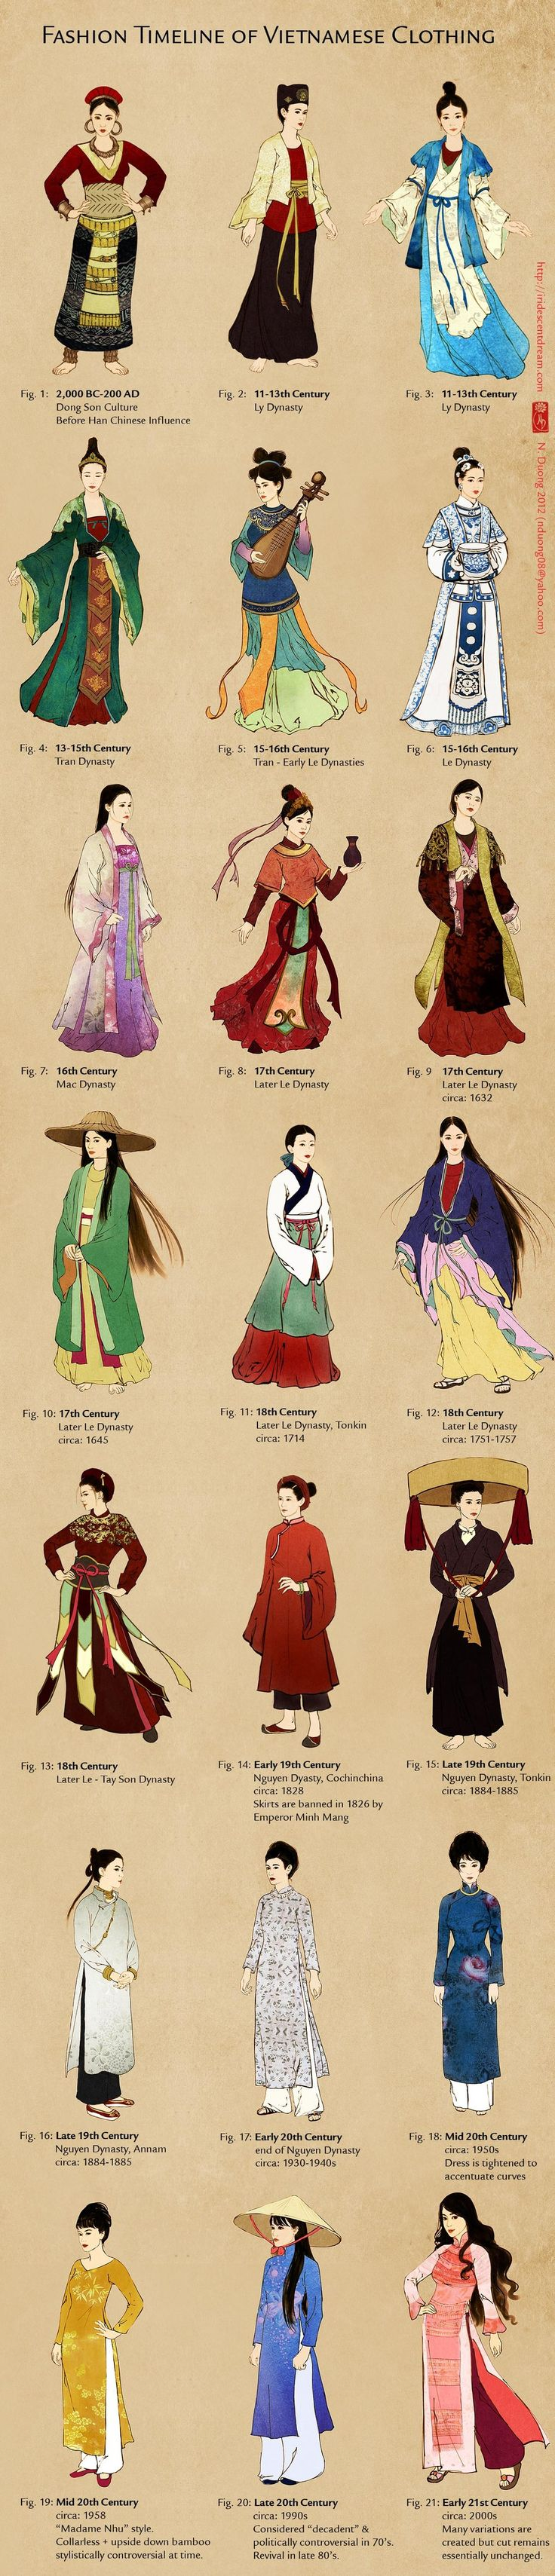 South Asian styles through history - China, Japan, Vietnam